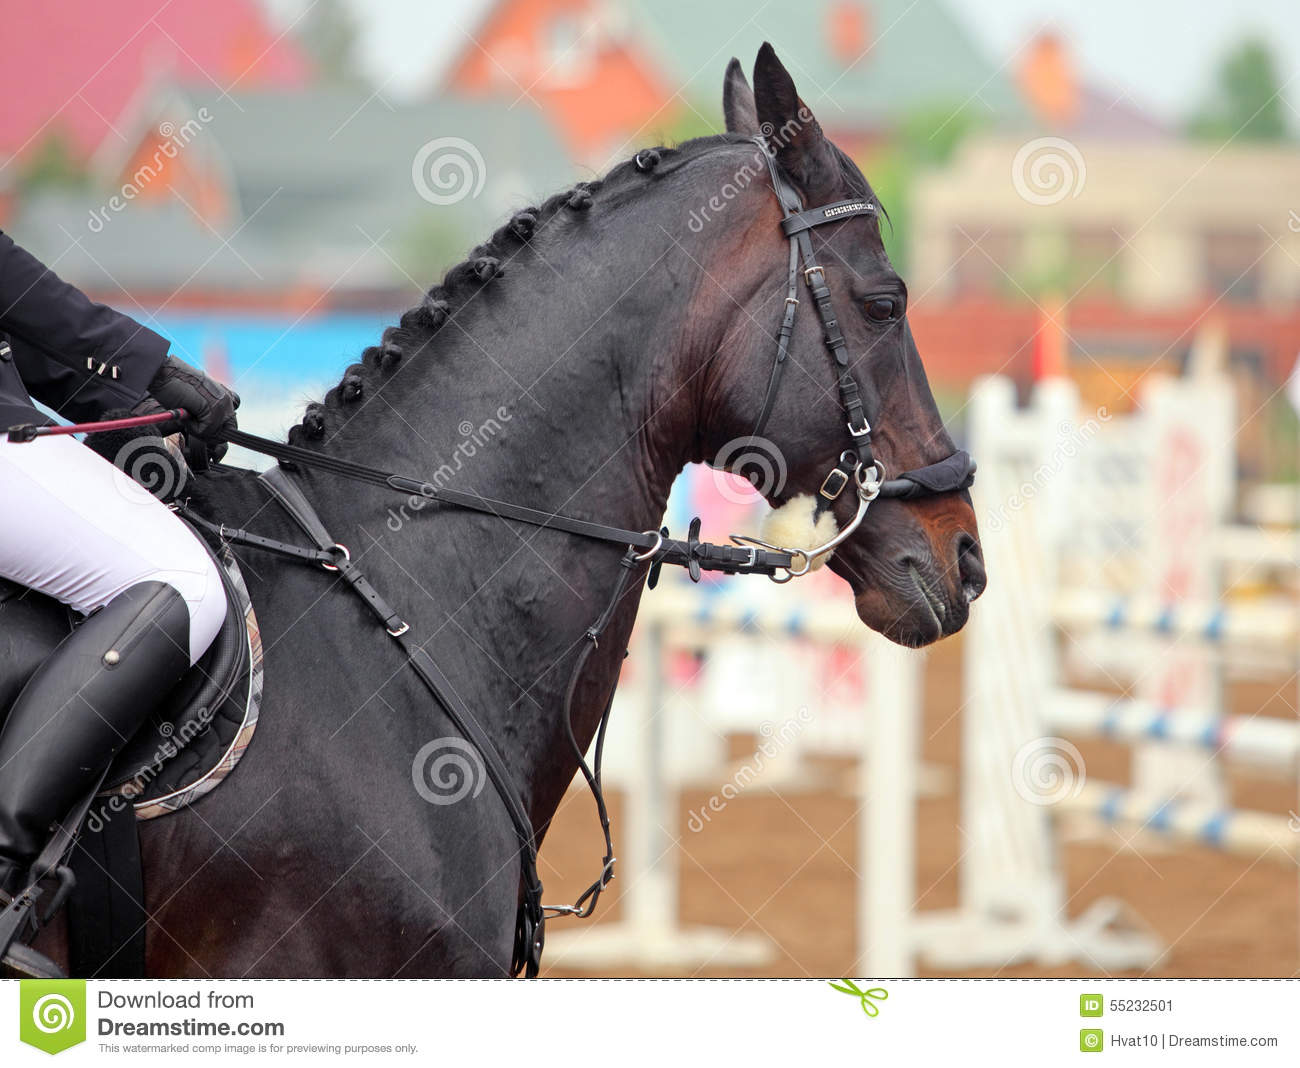 Saddle Horse With Hackamore Bridle Stock Photo Image